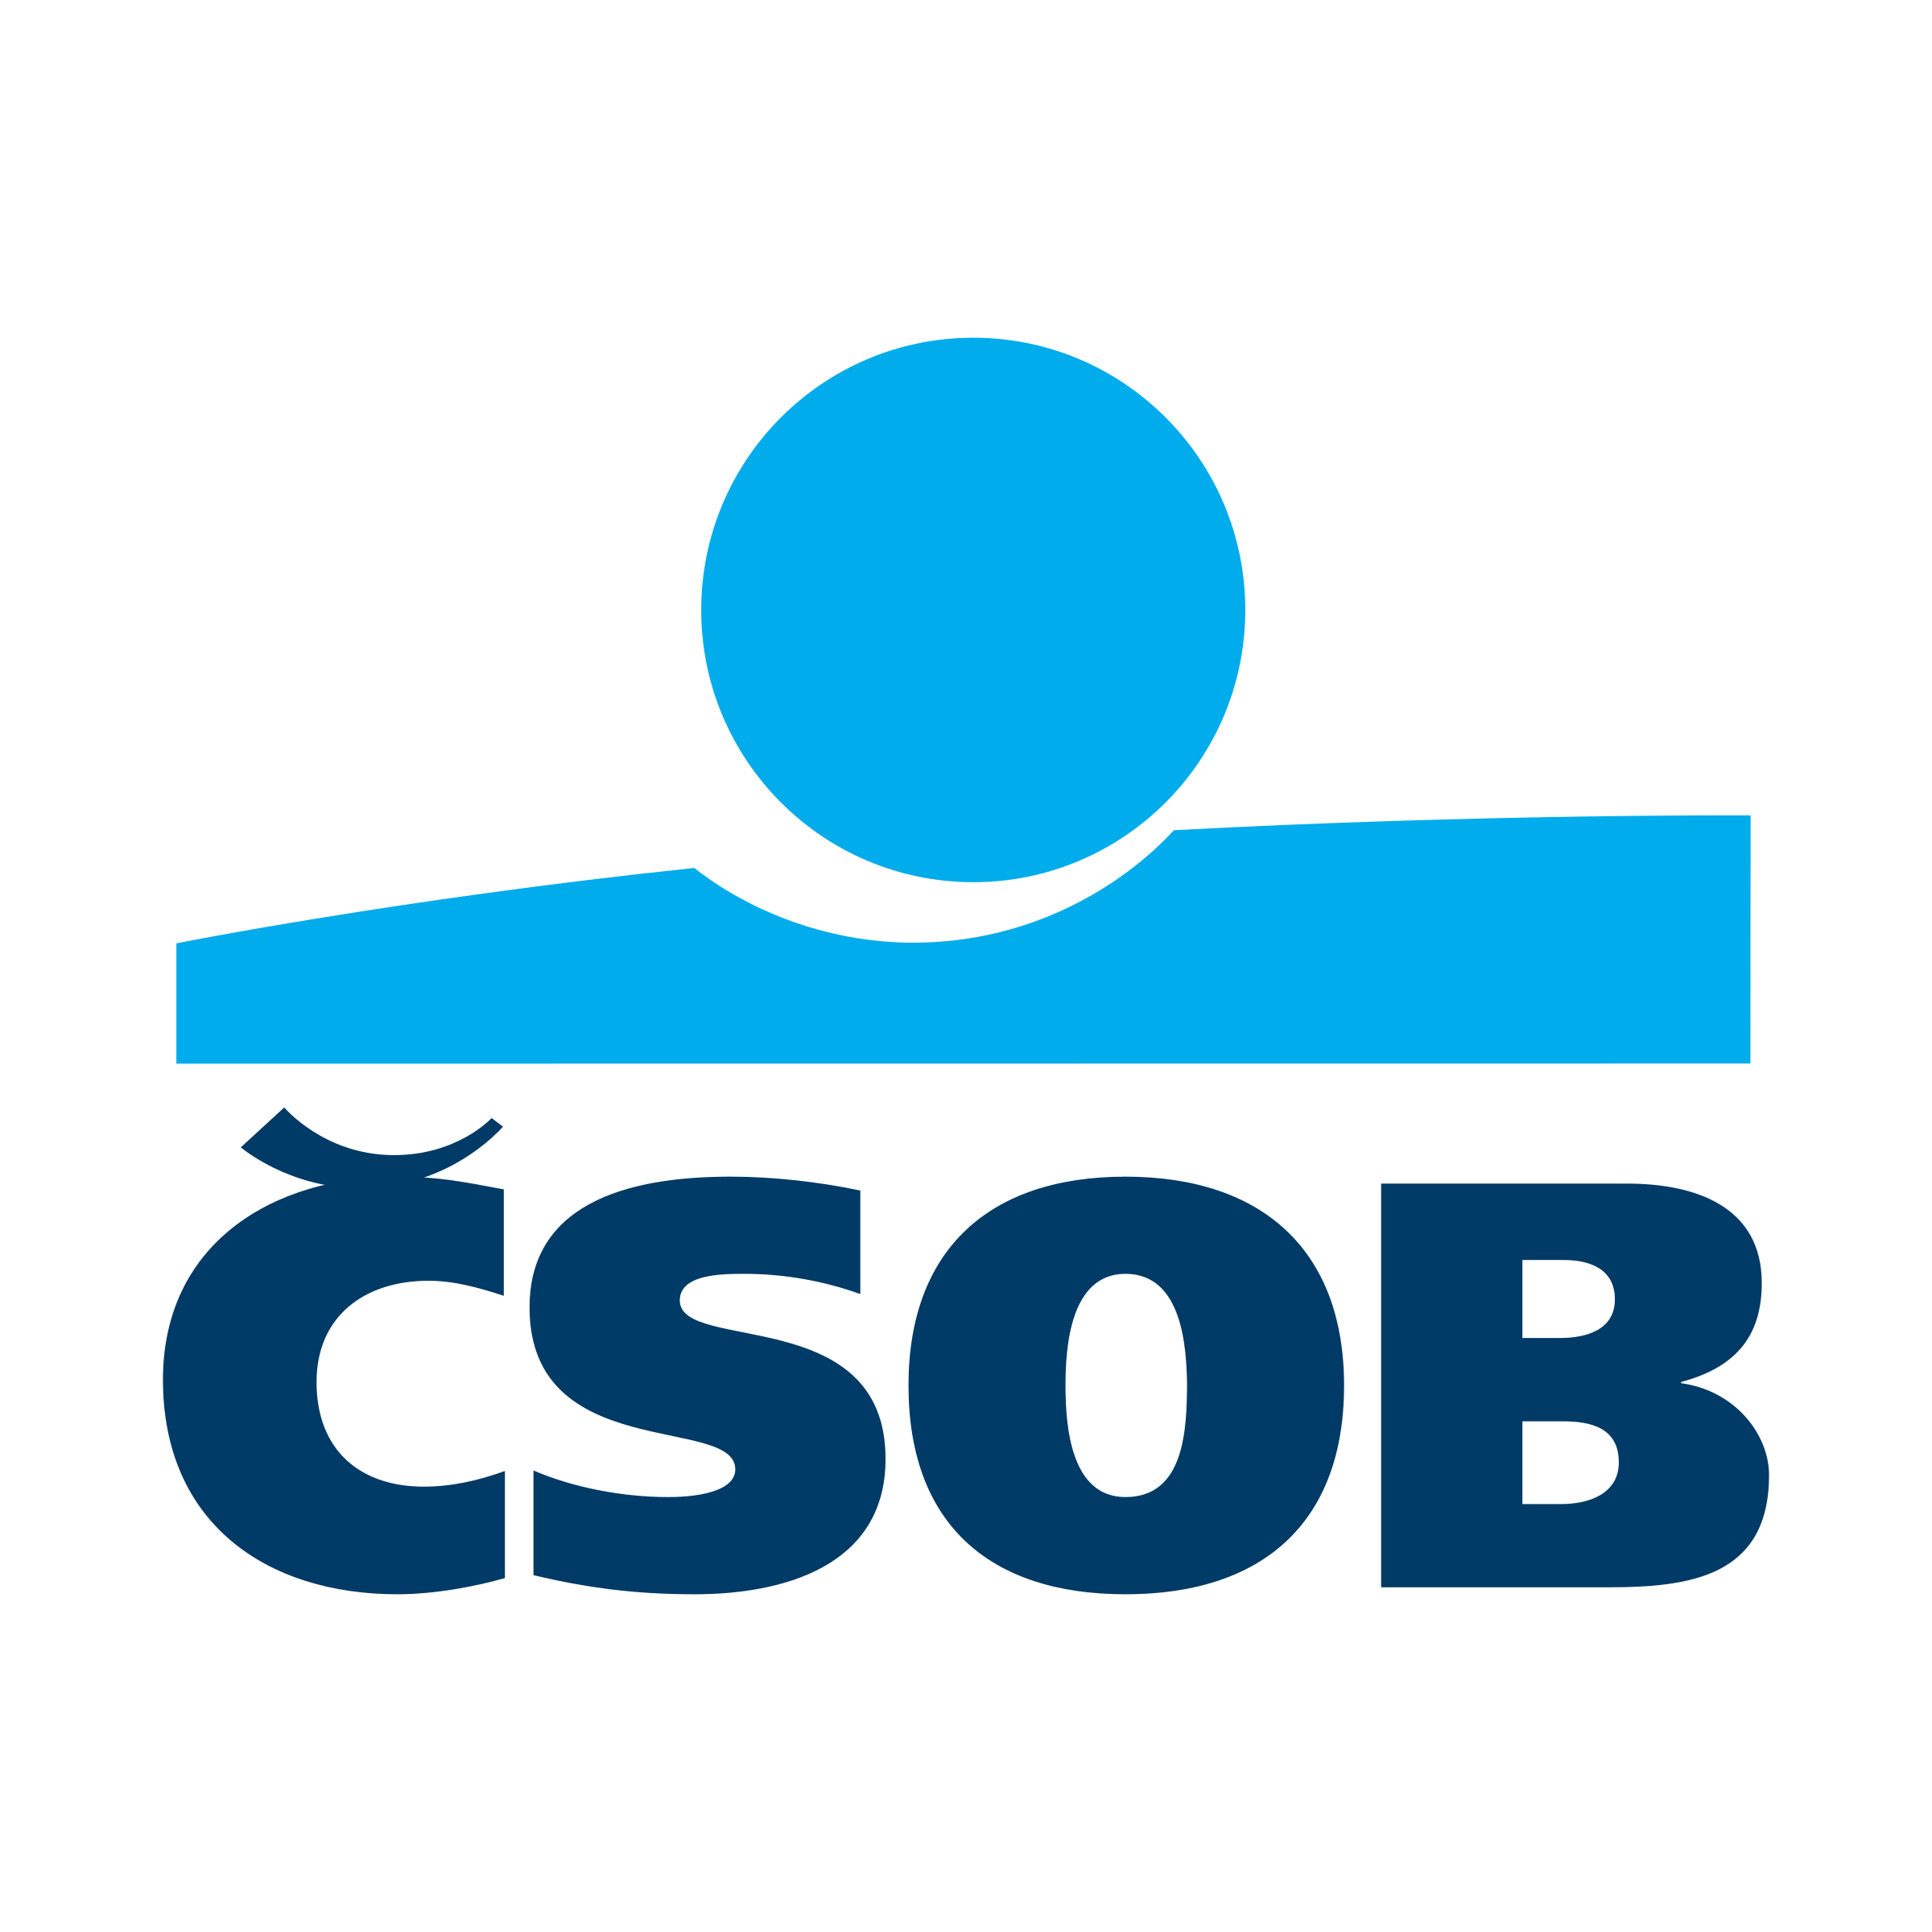 csob-logo-png-transparent